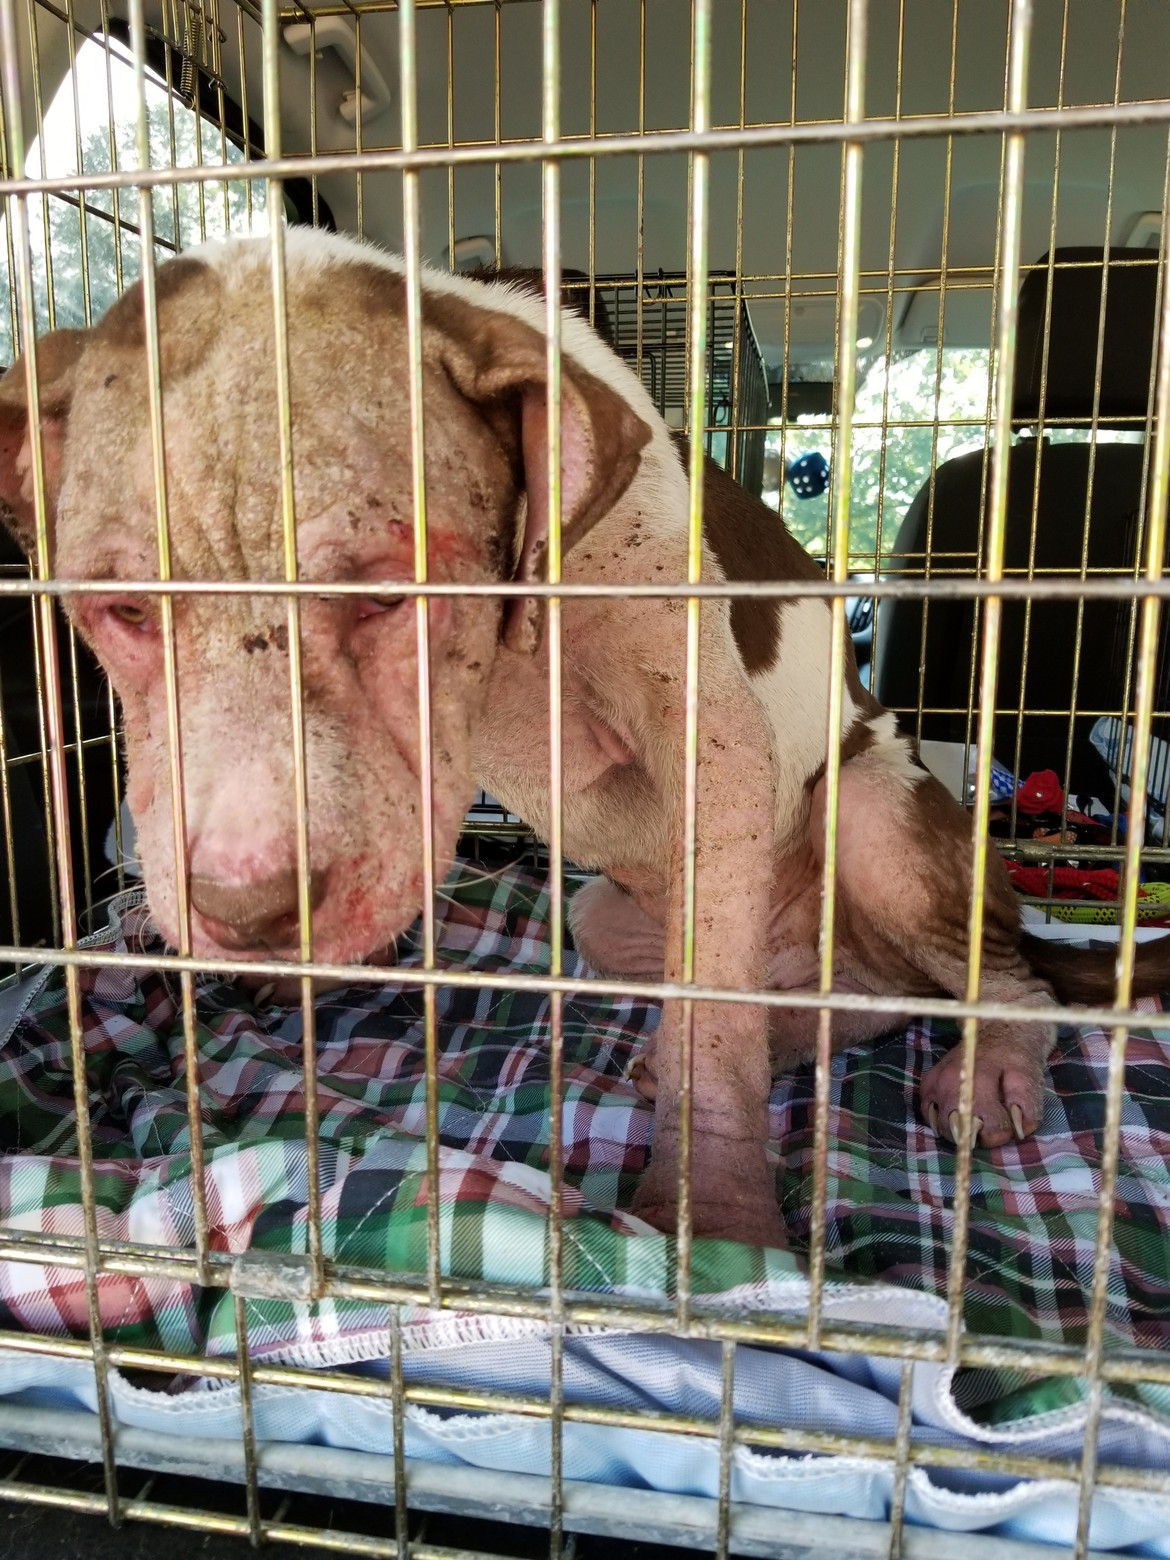 Severe mange and neglect.